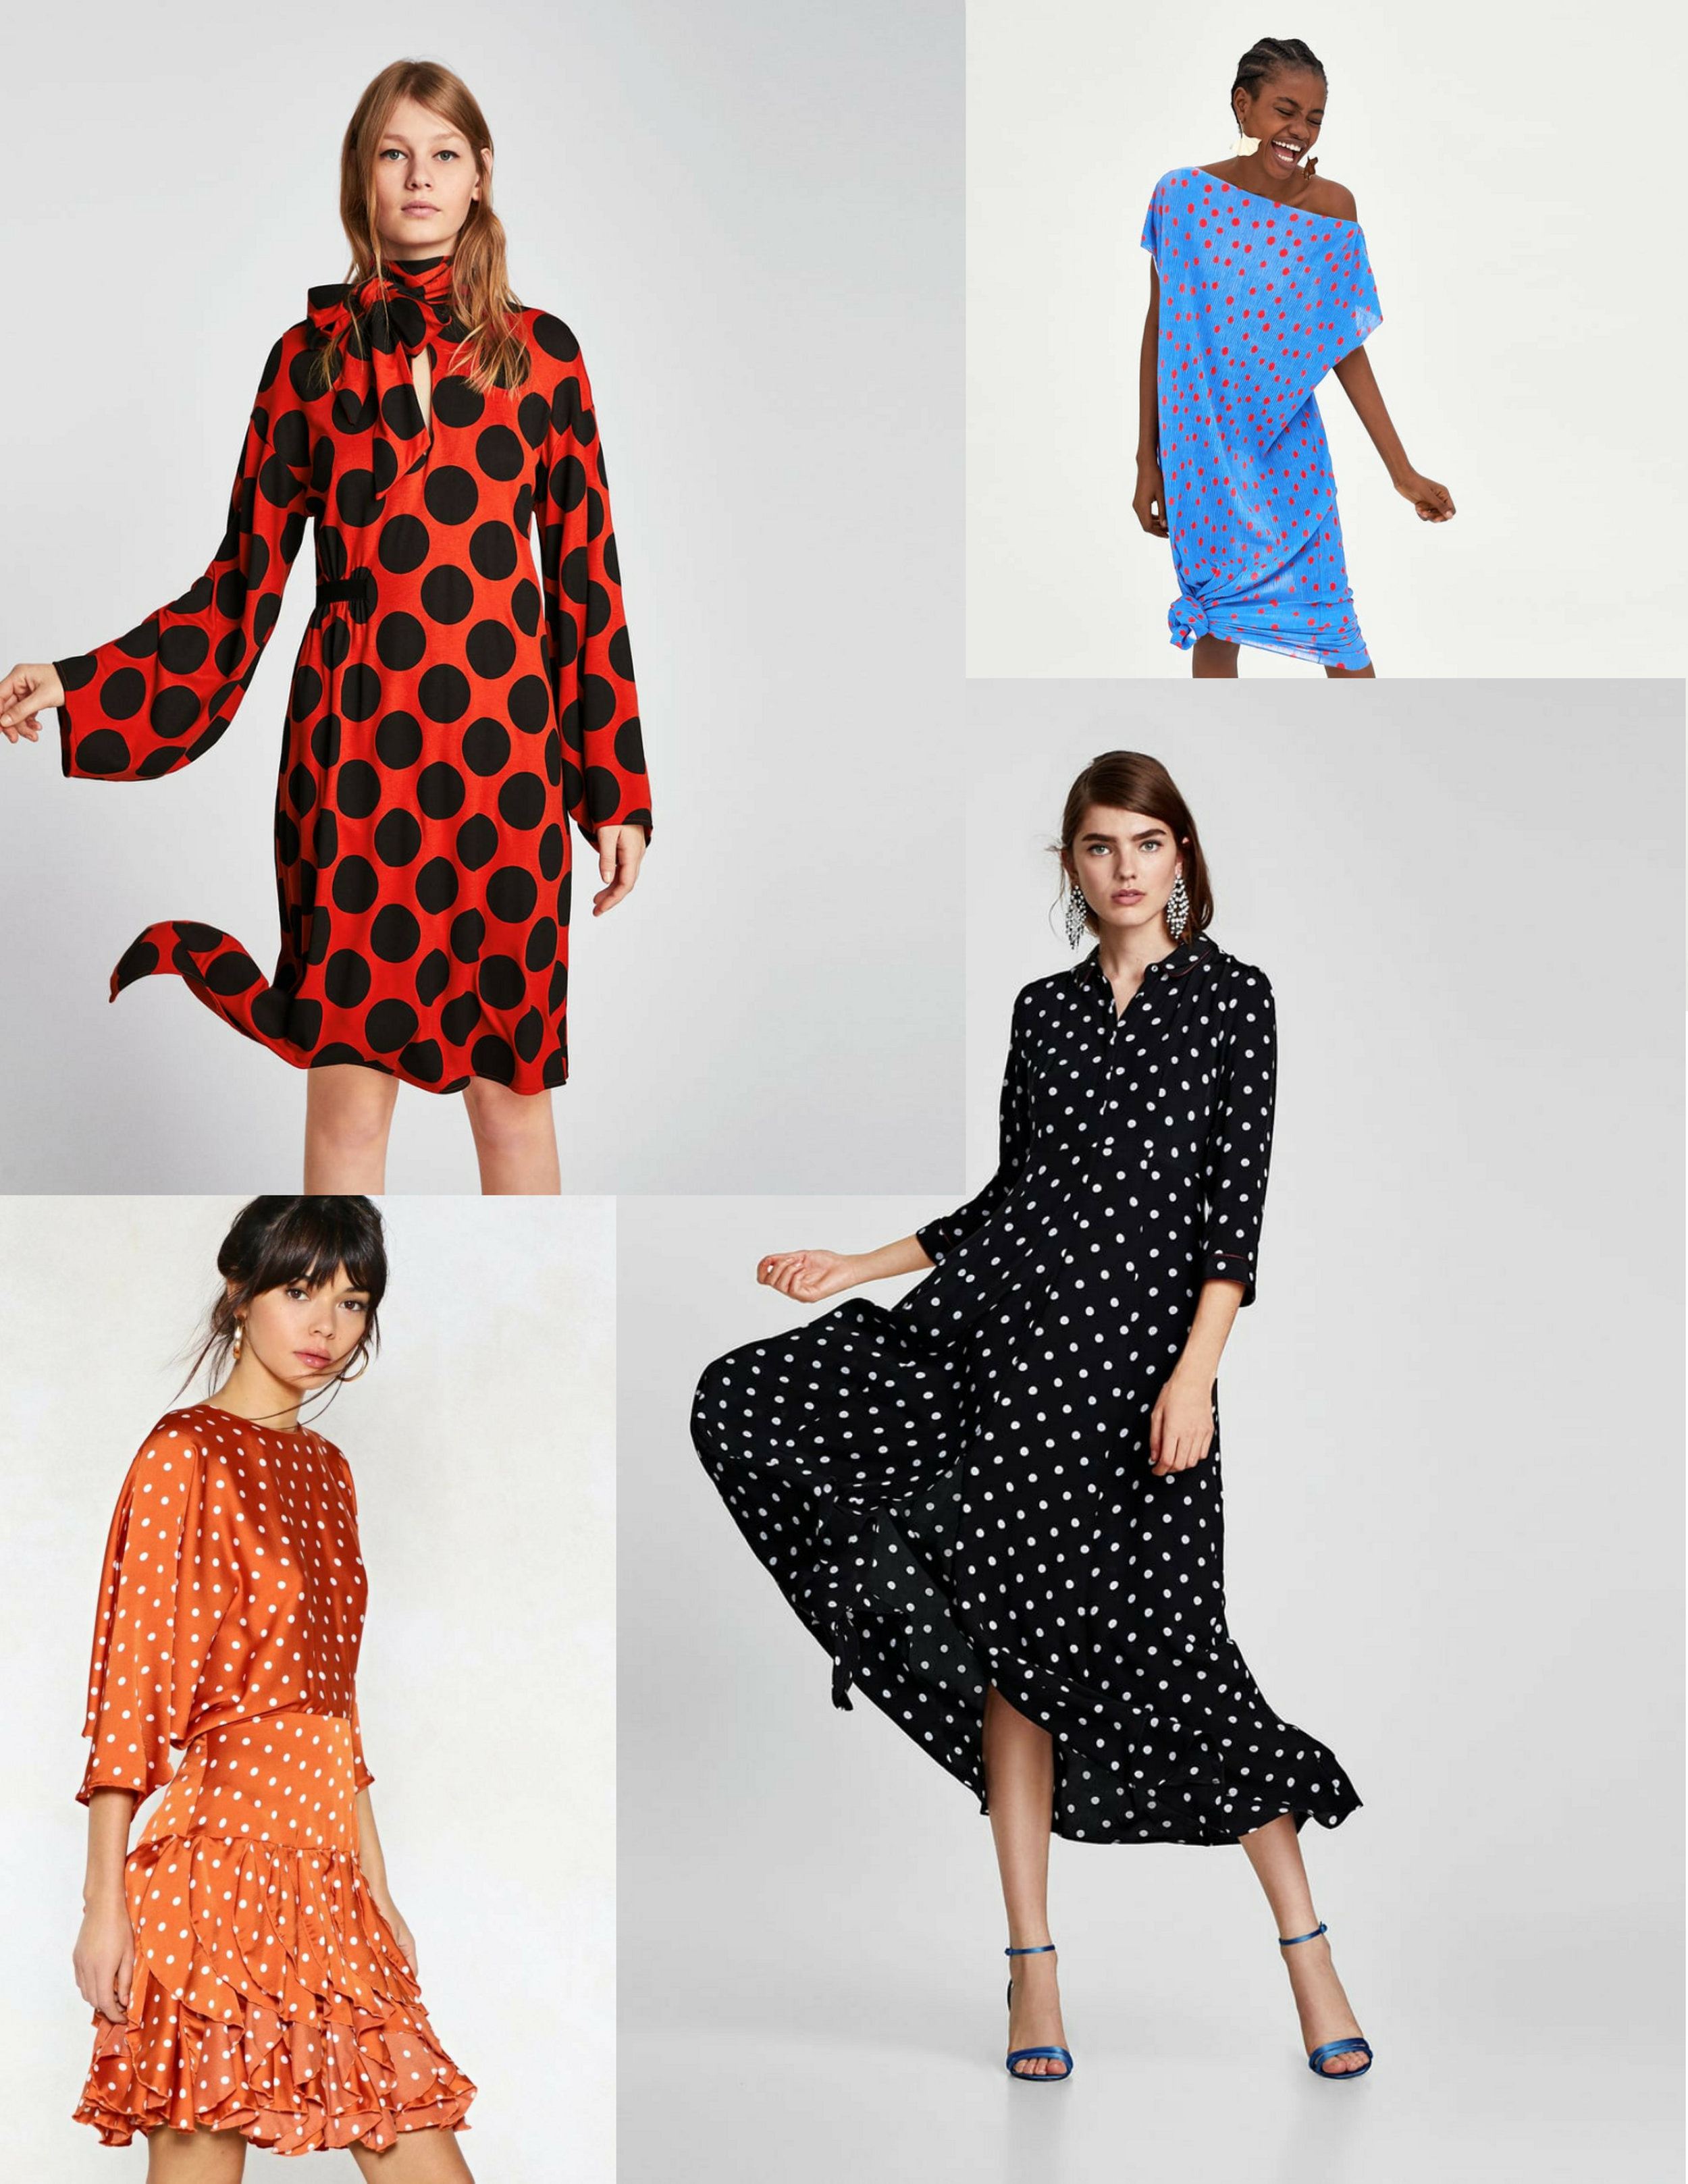 Selection of Polka Dot Dress from      Zara